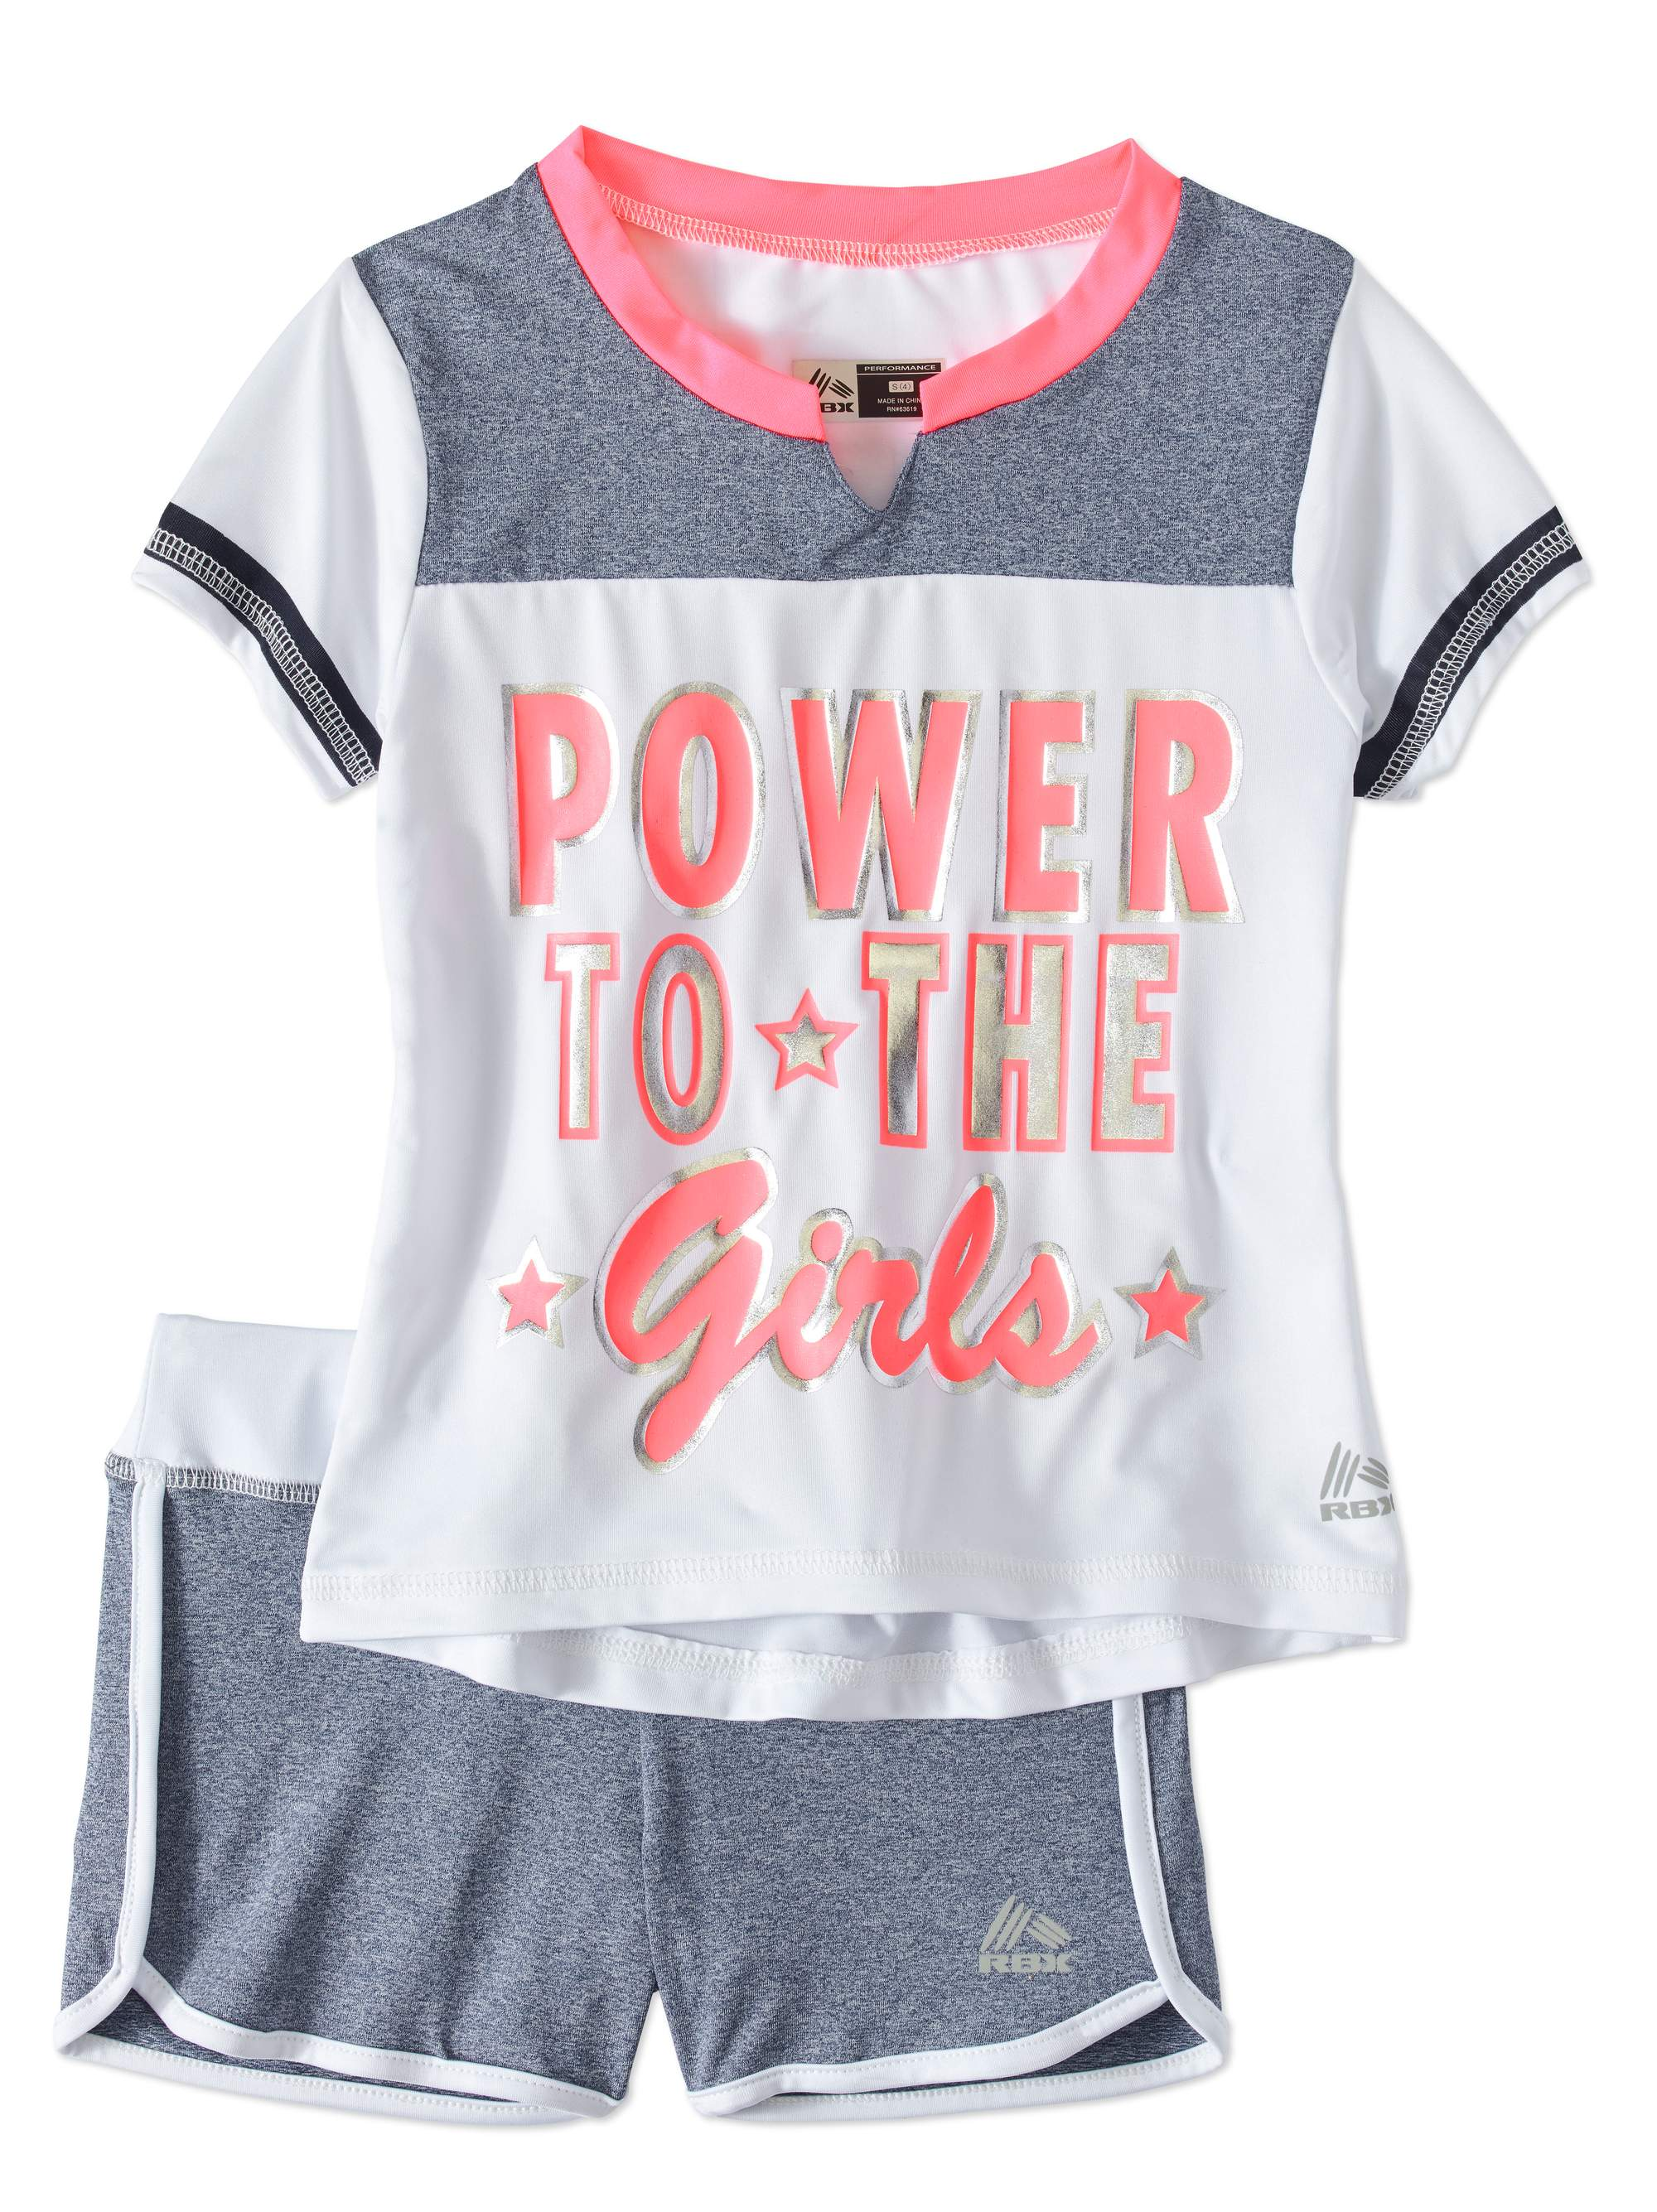 Little Girls' 4-6X Varsity Graphic Tee and Knit Short 2-Piece Active Set